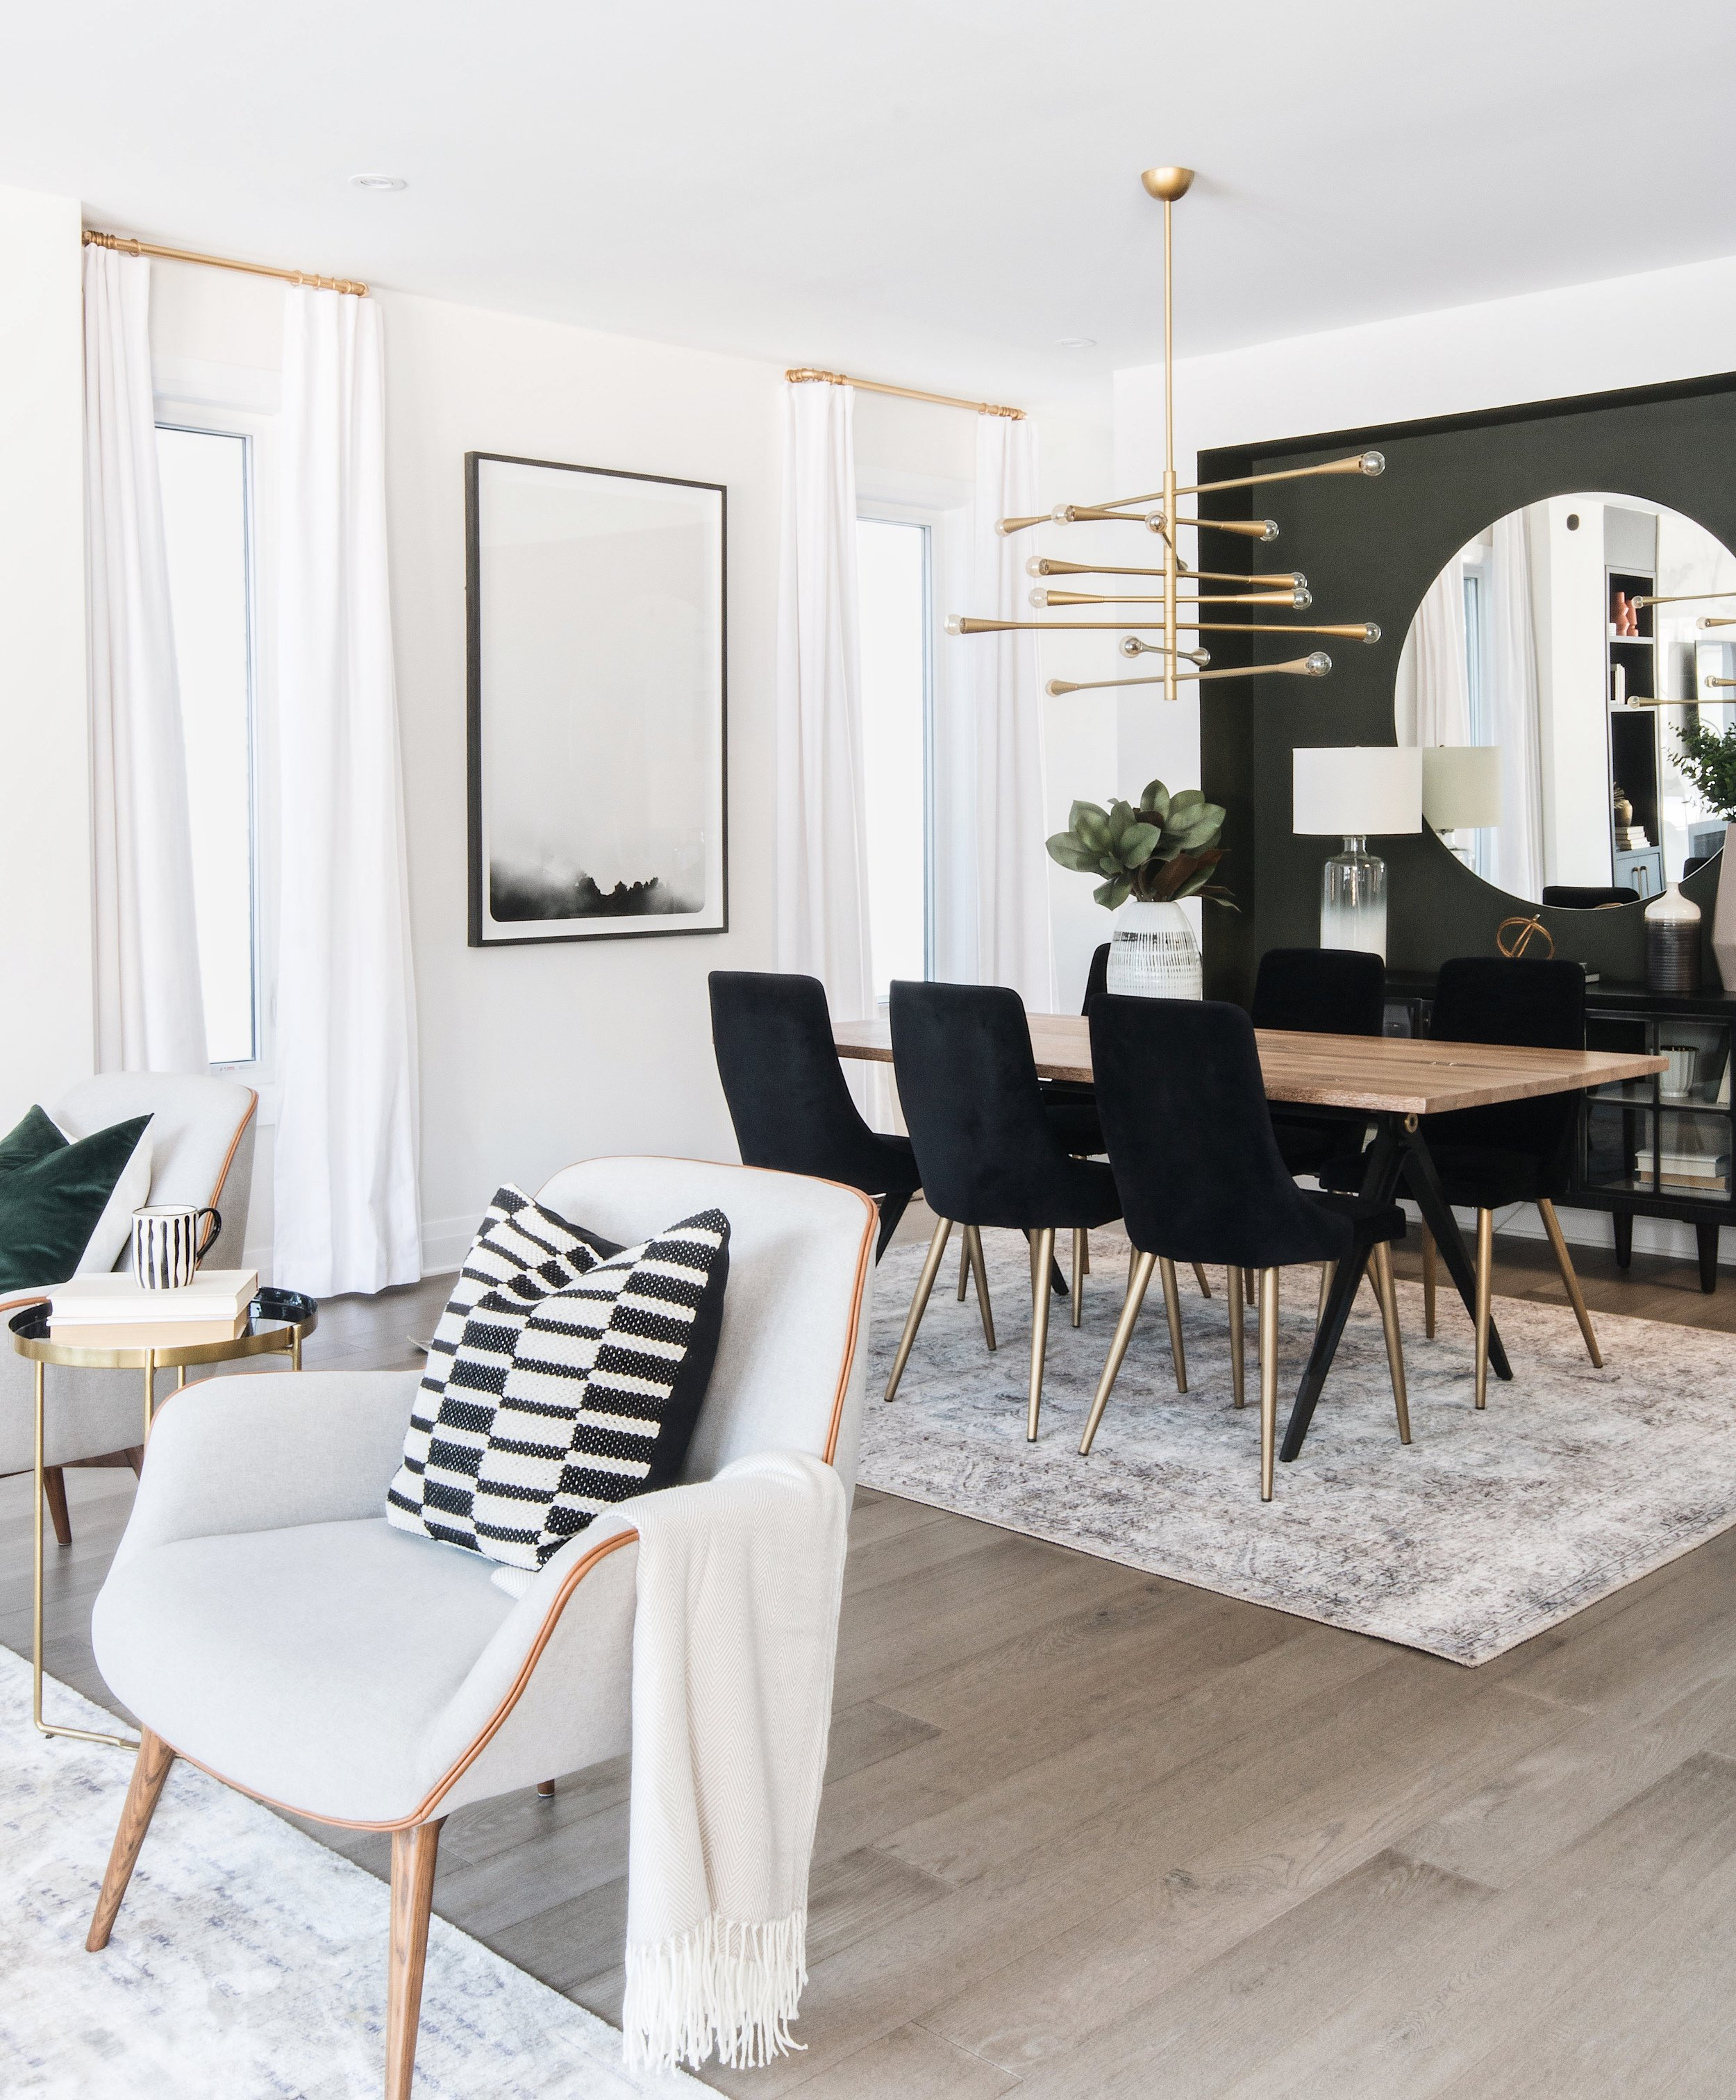 Modern but cozy living room and dining room design by Ottawa based interior design firm, Leclair Decor.